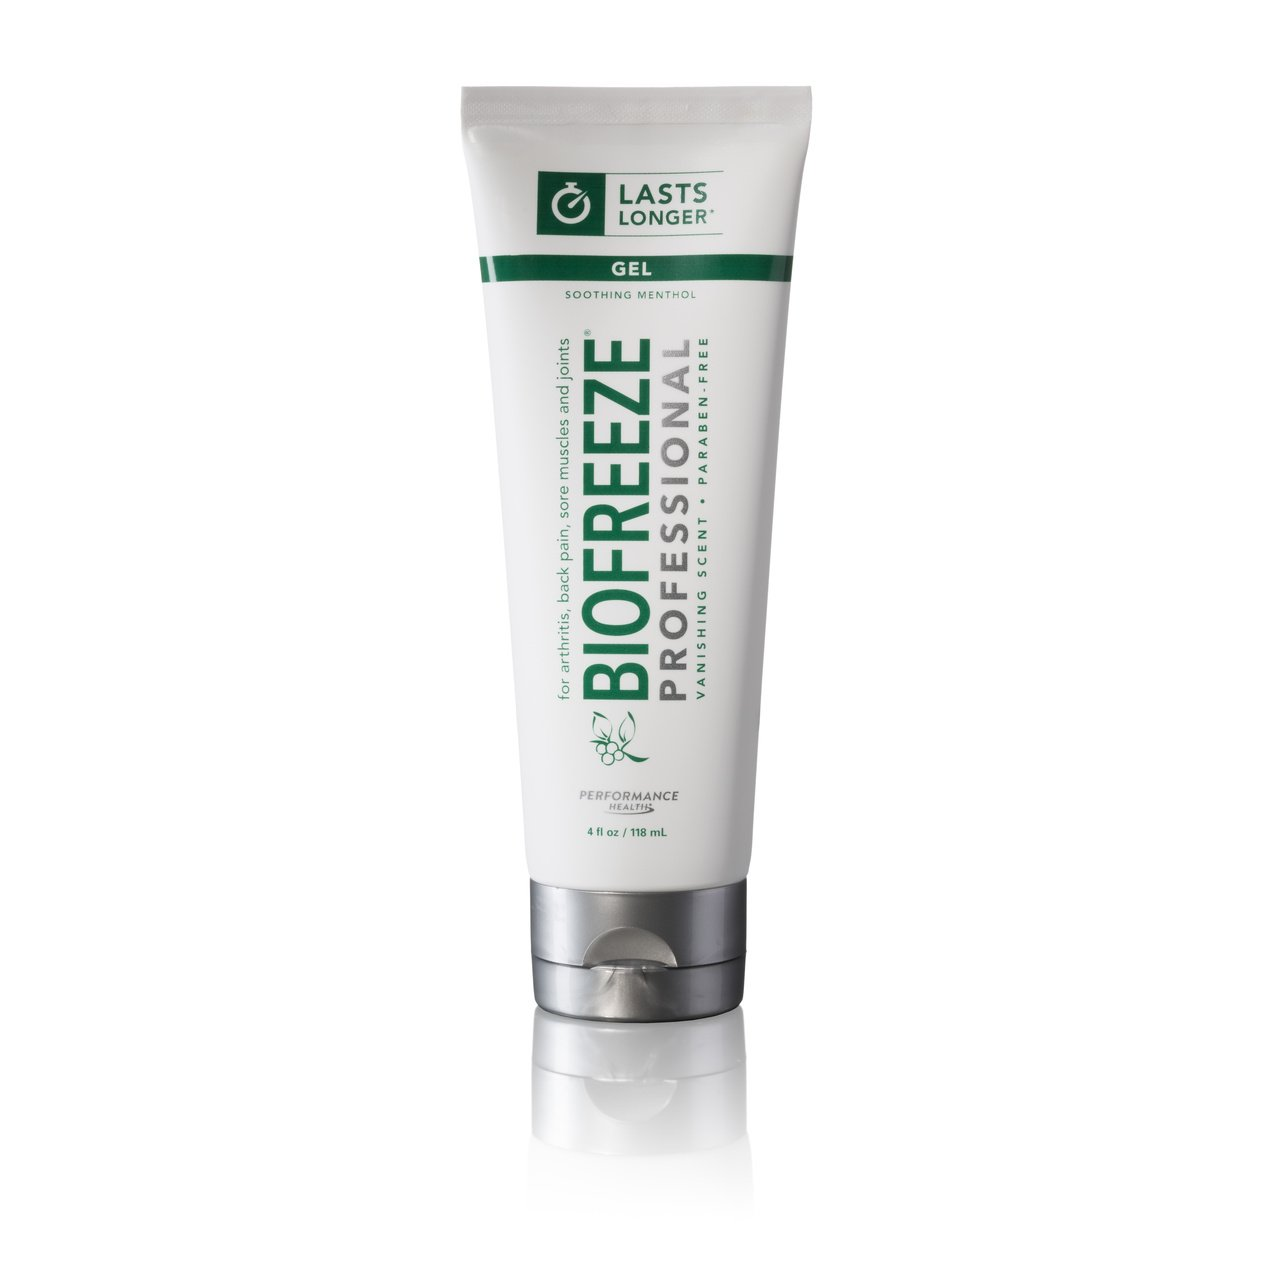 Biofreeze Professional Pain Relieving Gel, Enhanced Relief of Arthritis, Muscle, Joint, Back Pain, NSAID Free Pain Reliever Cream for Sore Muscles, 4 oz. Tube, Original Green Formula, 5% Menthol